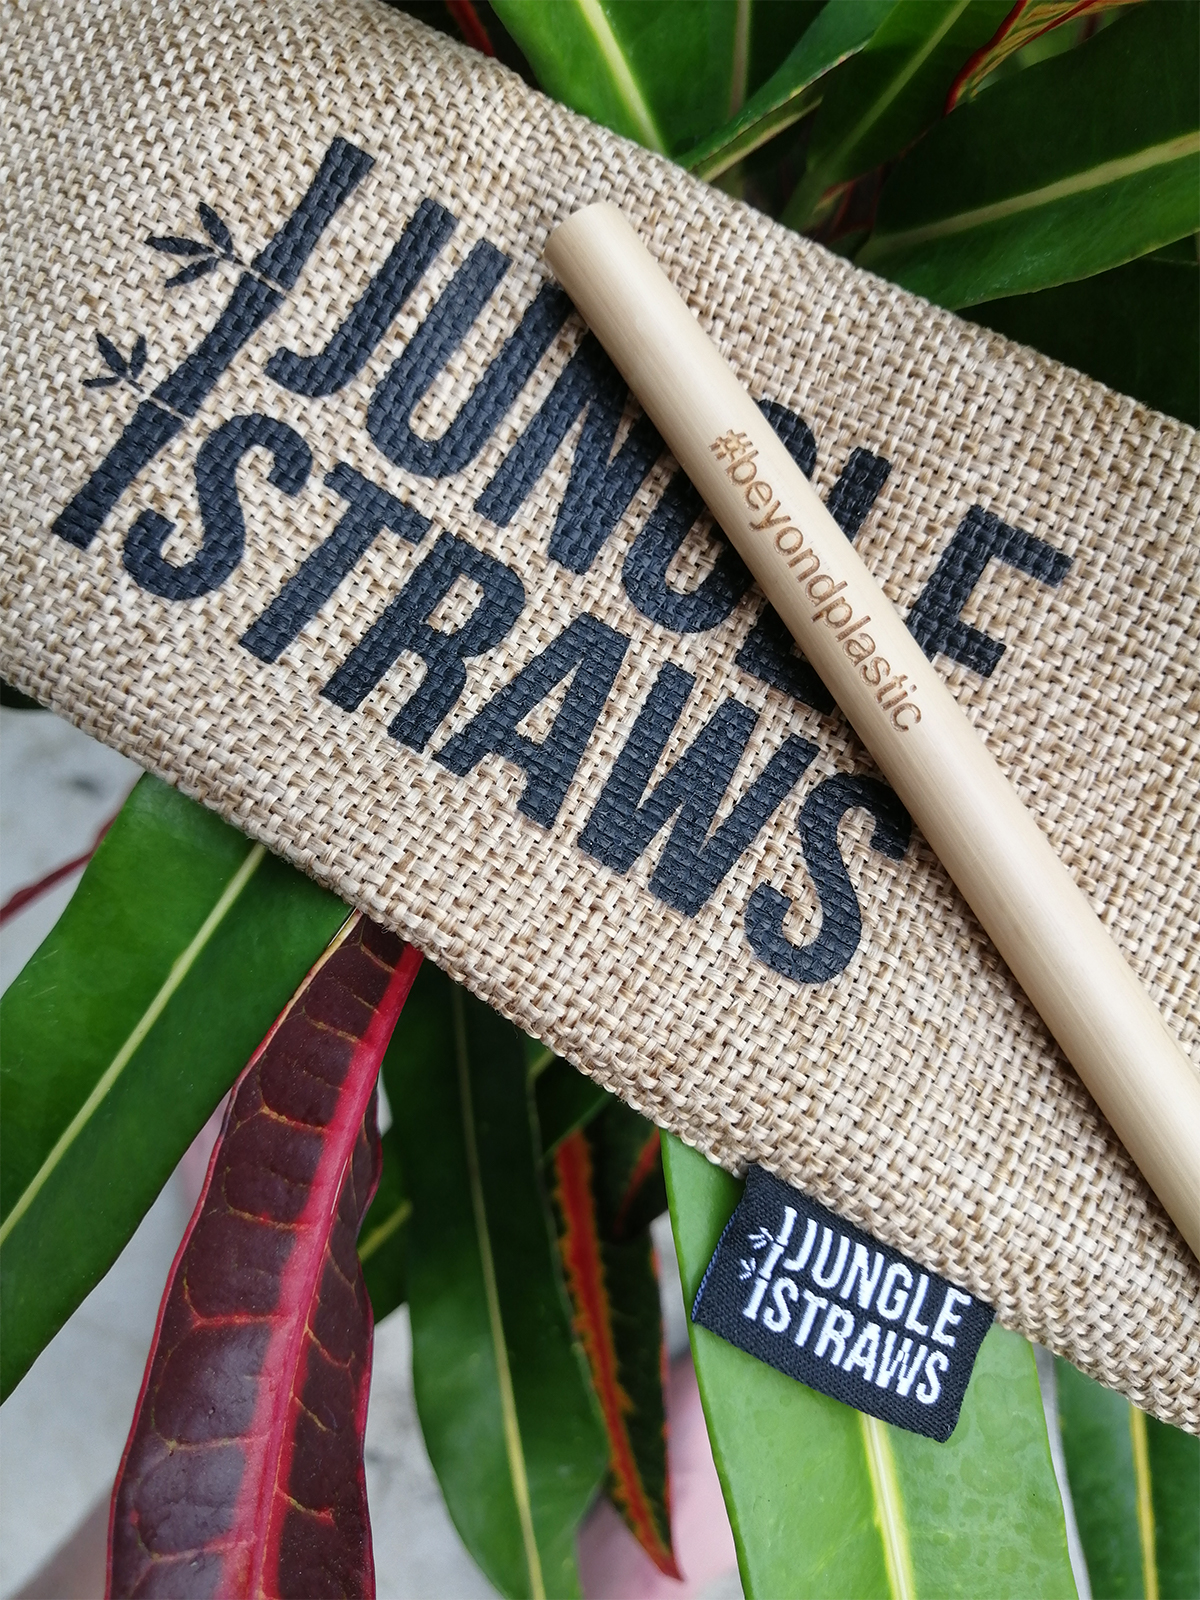 Jungle-Straws-Engraved-Bamboo-Drinking-Straws-Branded-Straws-Bulk.jpg